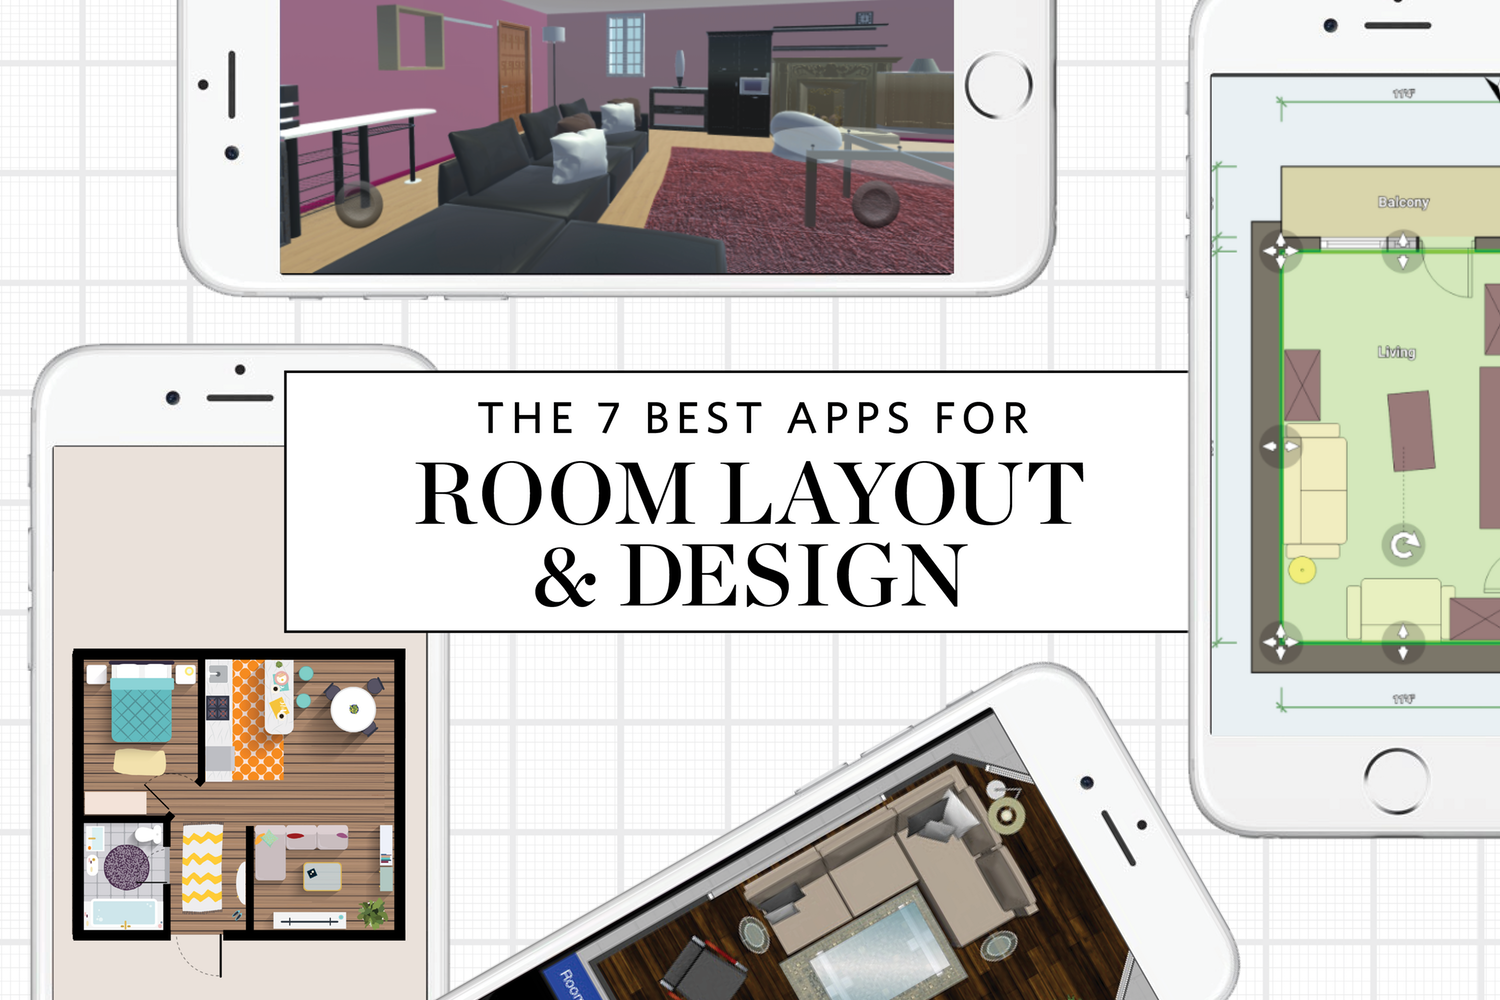 Tiny Home Design App: The 7 Best Apps For Planning A Room Layout & Design